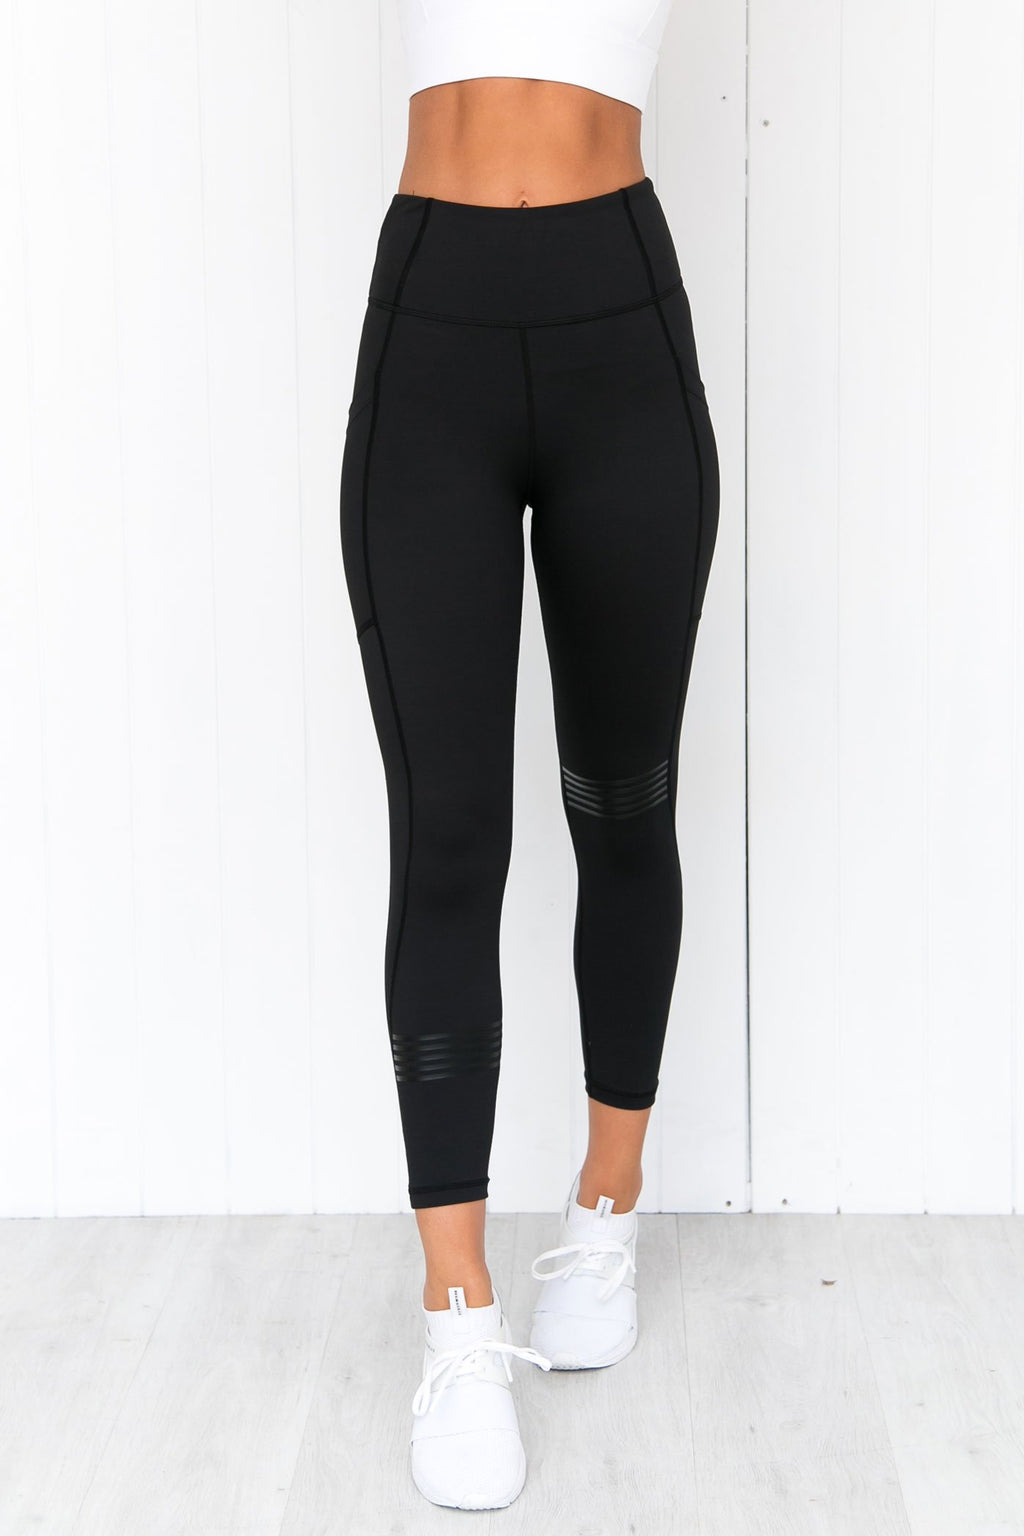 Layla Phantom Black Leggings - PURE DASH